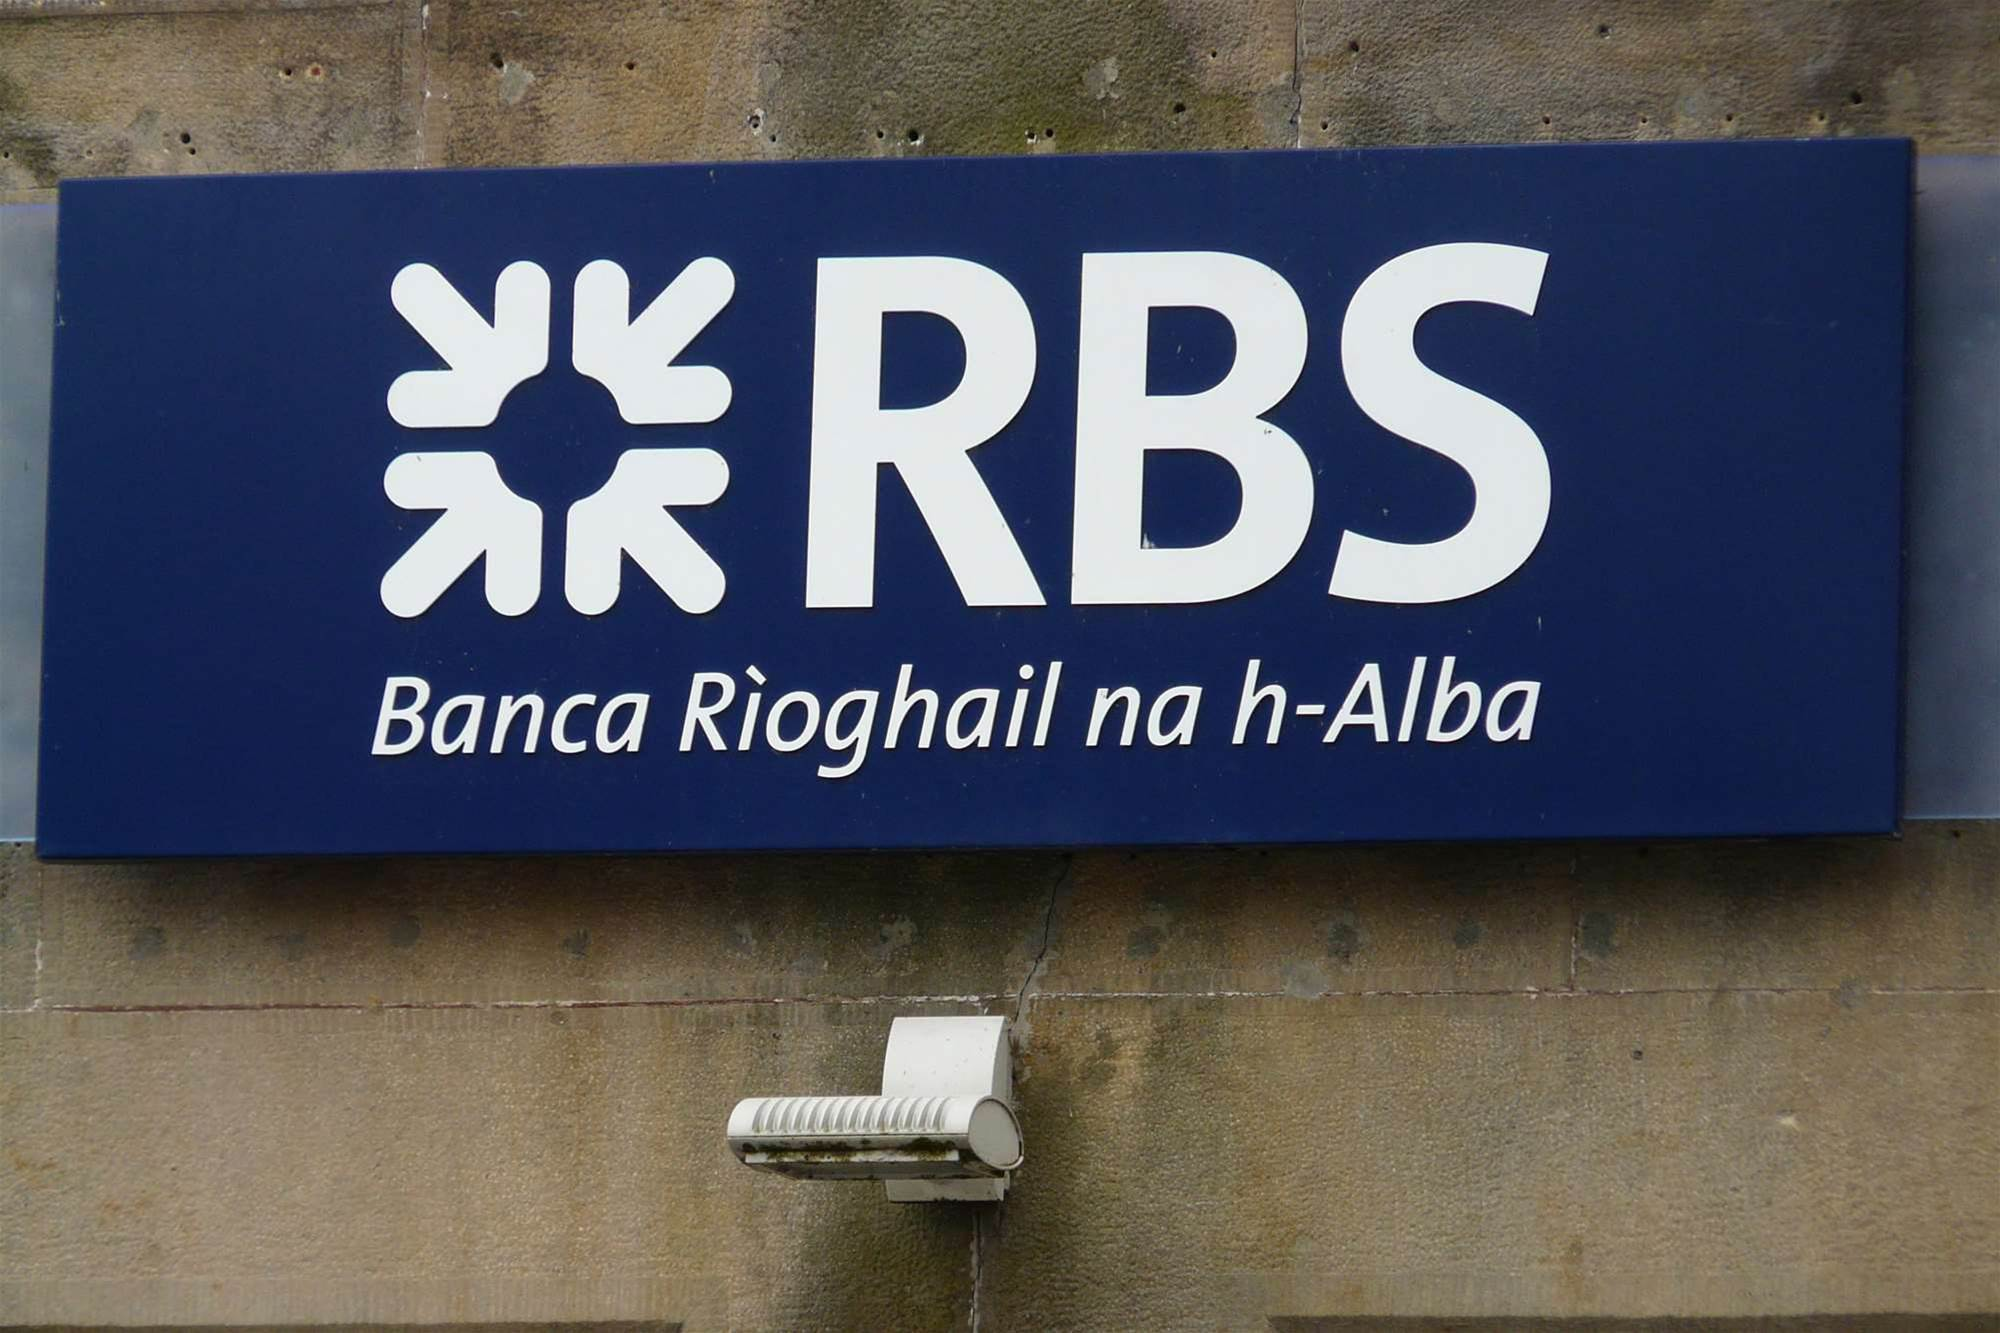 RBS hit with $102m fine for IT failures